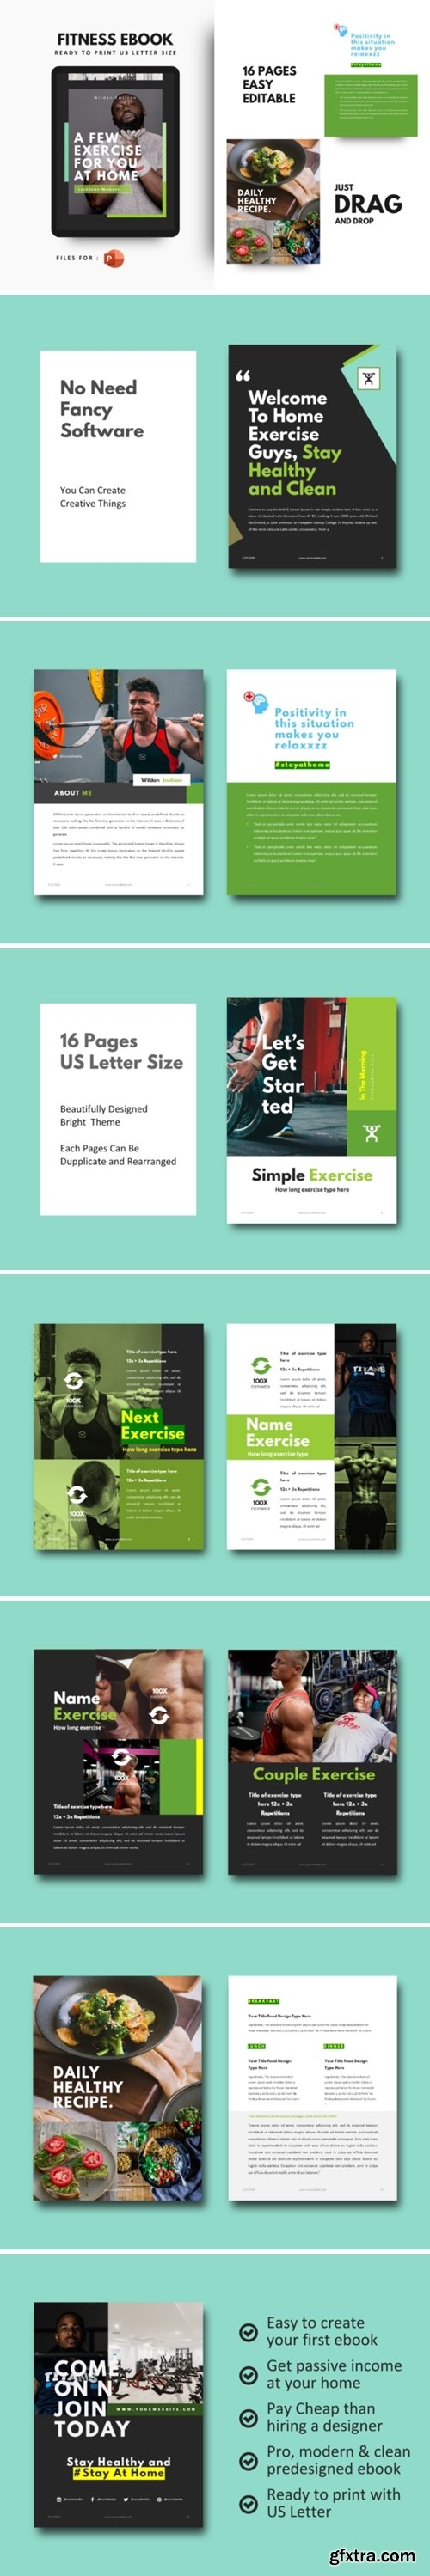 Daily Fitness at Your Home Ebook Template 3768169